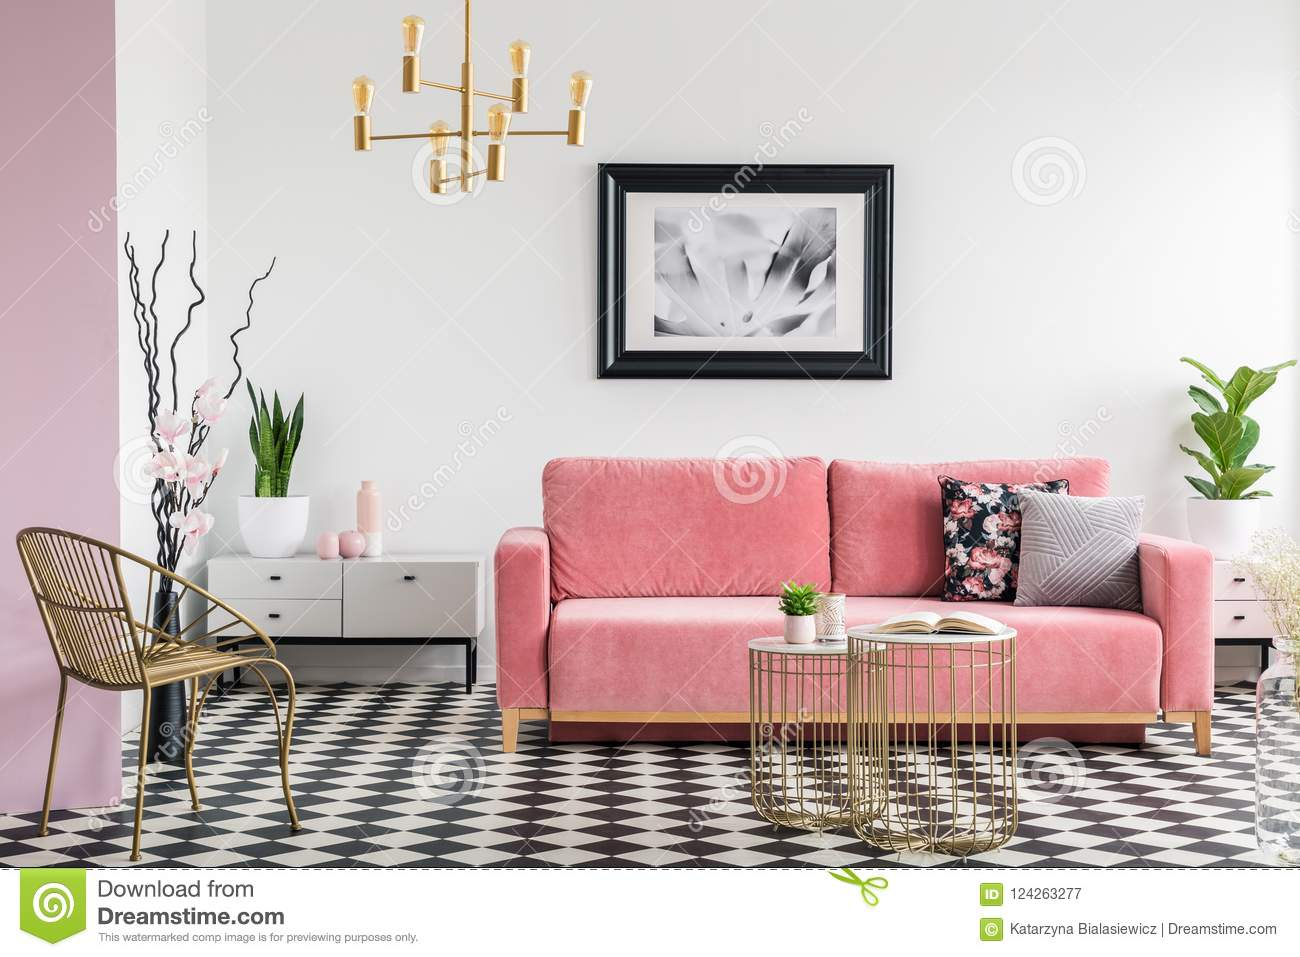 Gold Chair And Pink Sofa In Modern Living Room Interior With Poster